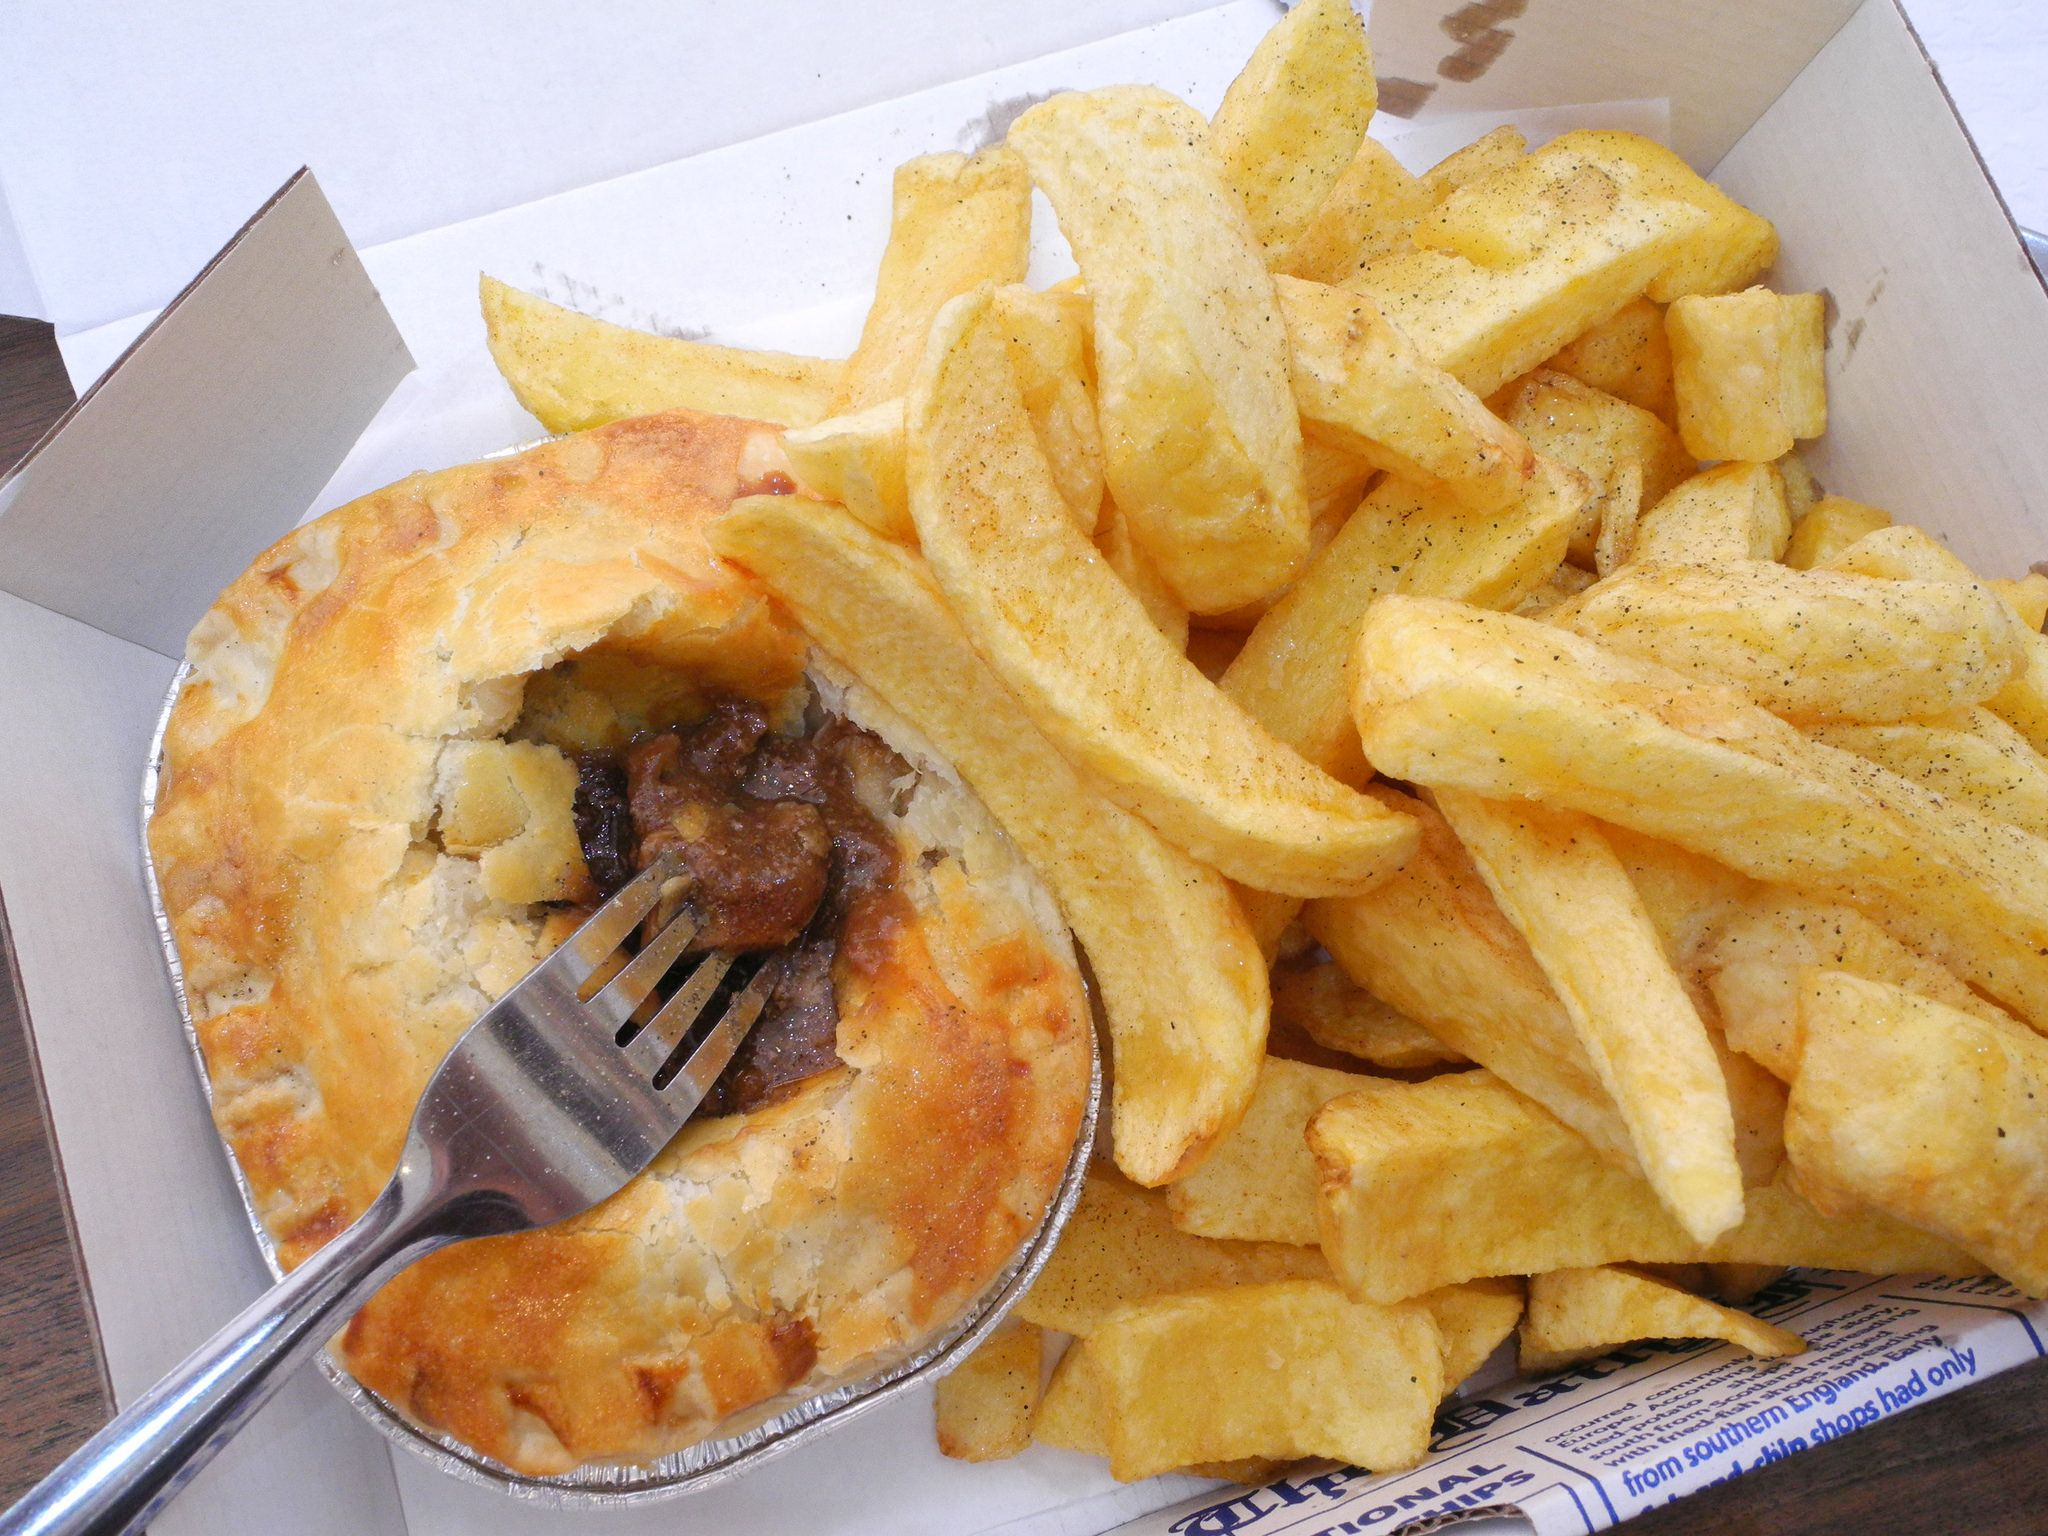 Kennedy's Tooting   Steak and kidney pie, Food, Pie and chips